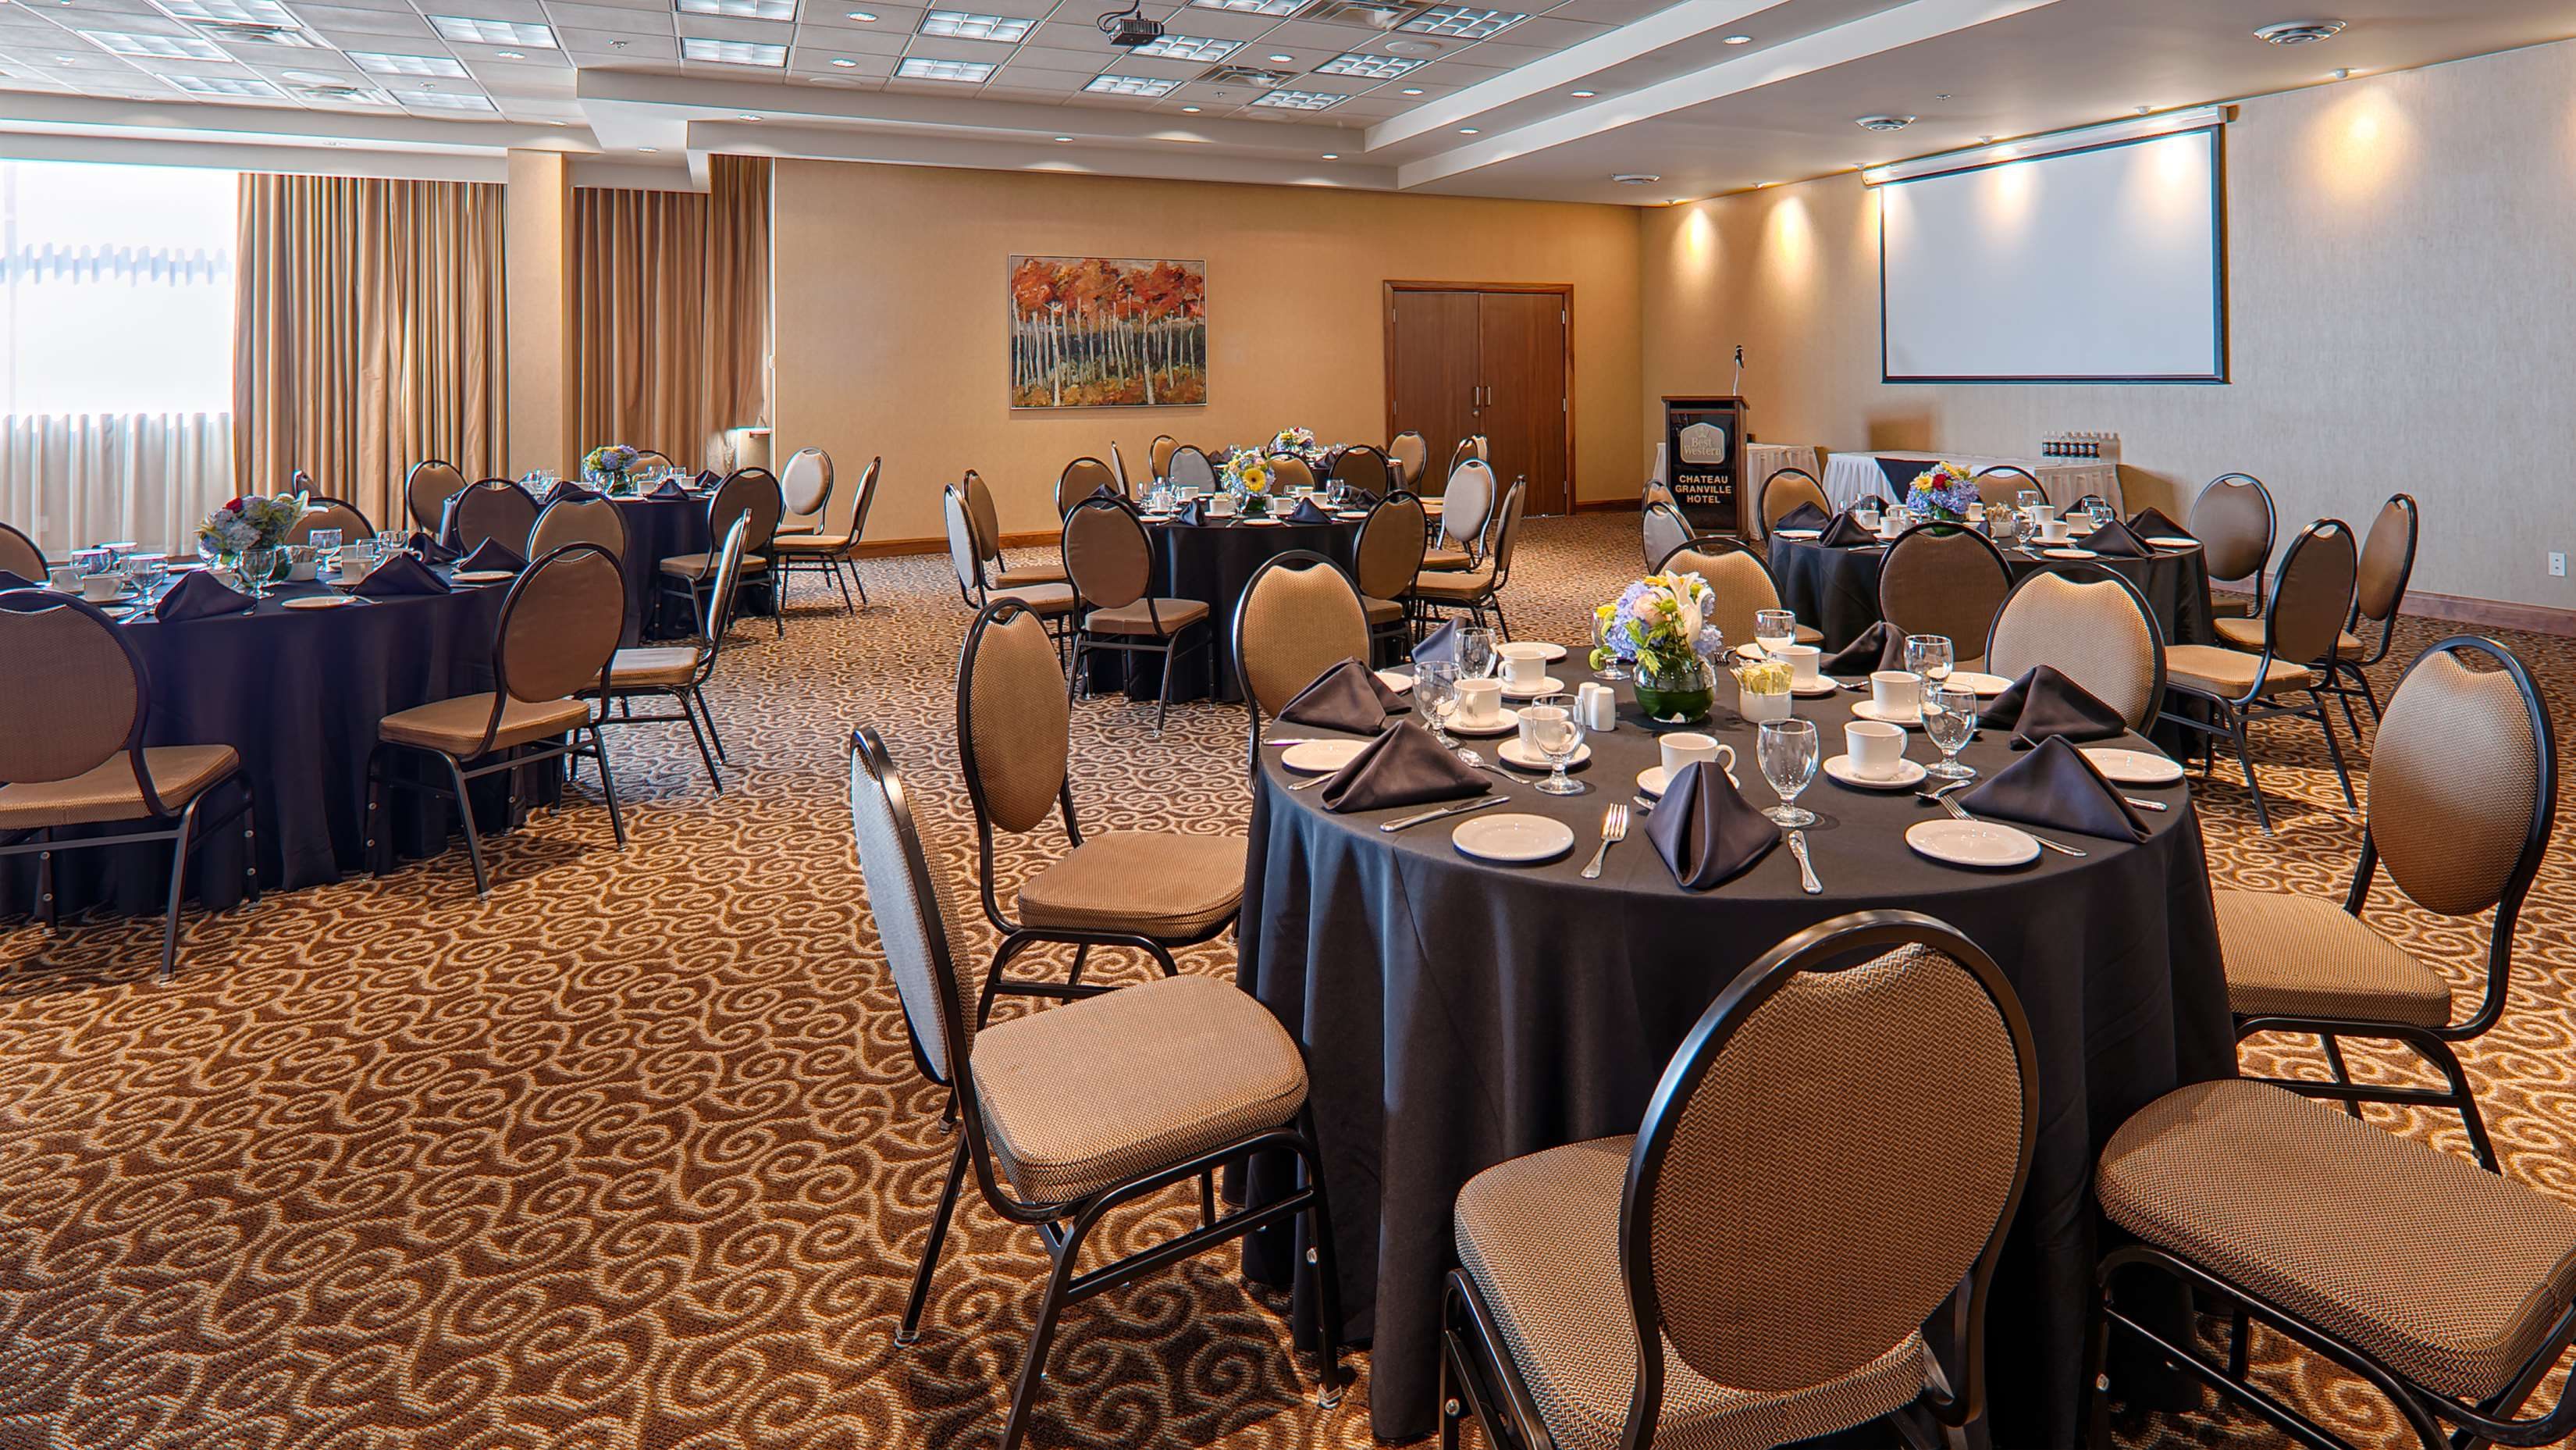 Best Western Plus Chateau Granville Hotel & Suites & Conference Ctr. in Vancouver: Conference Center